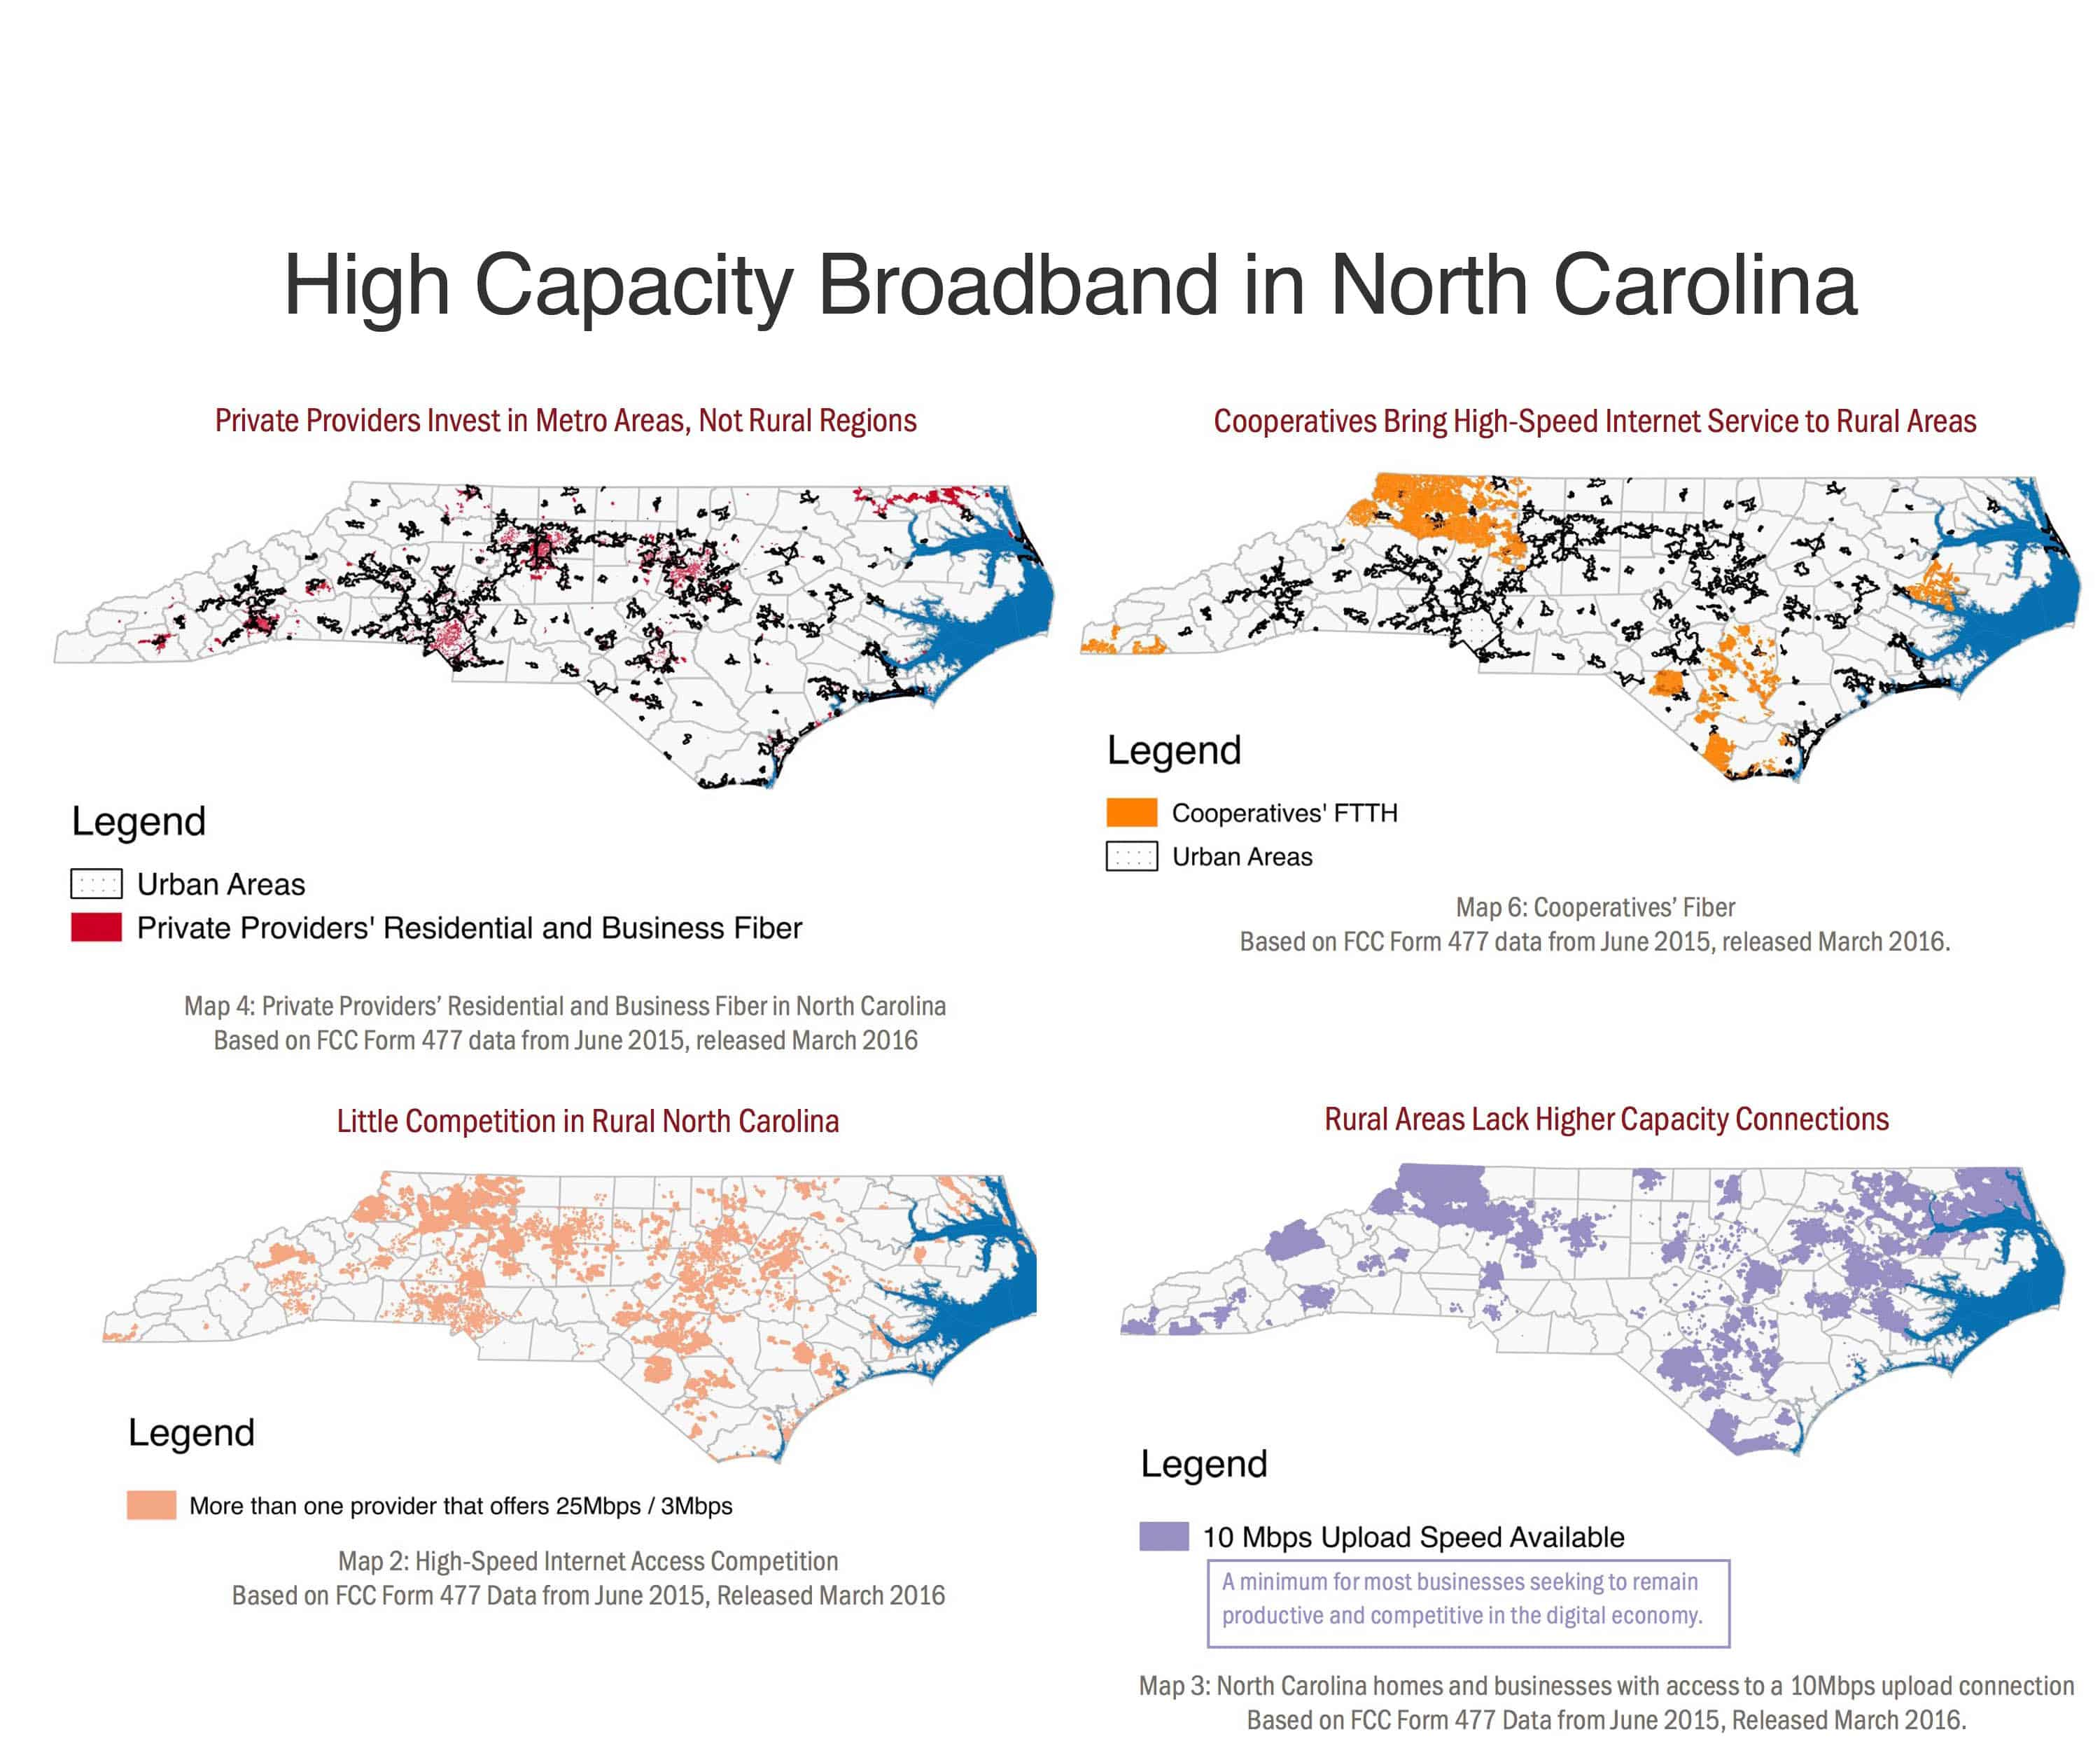 Maps created by the Institute for Local Self-Reliance from FCC data.